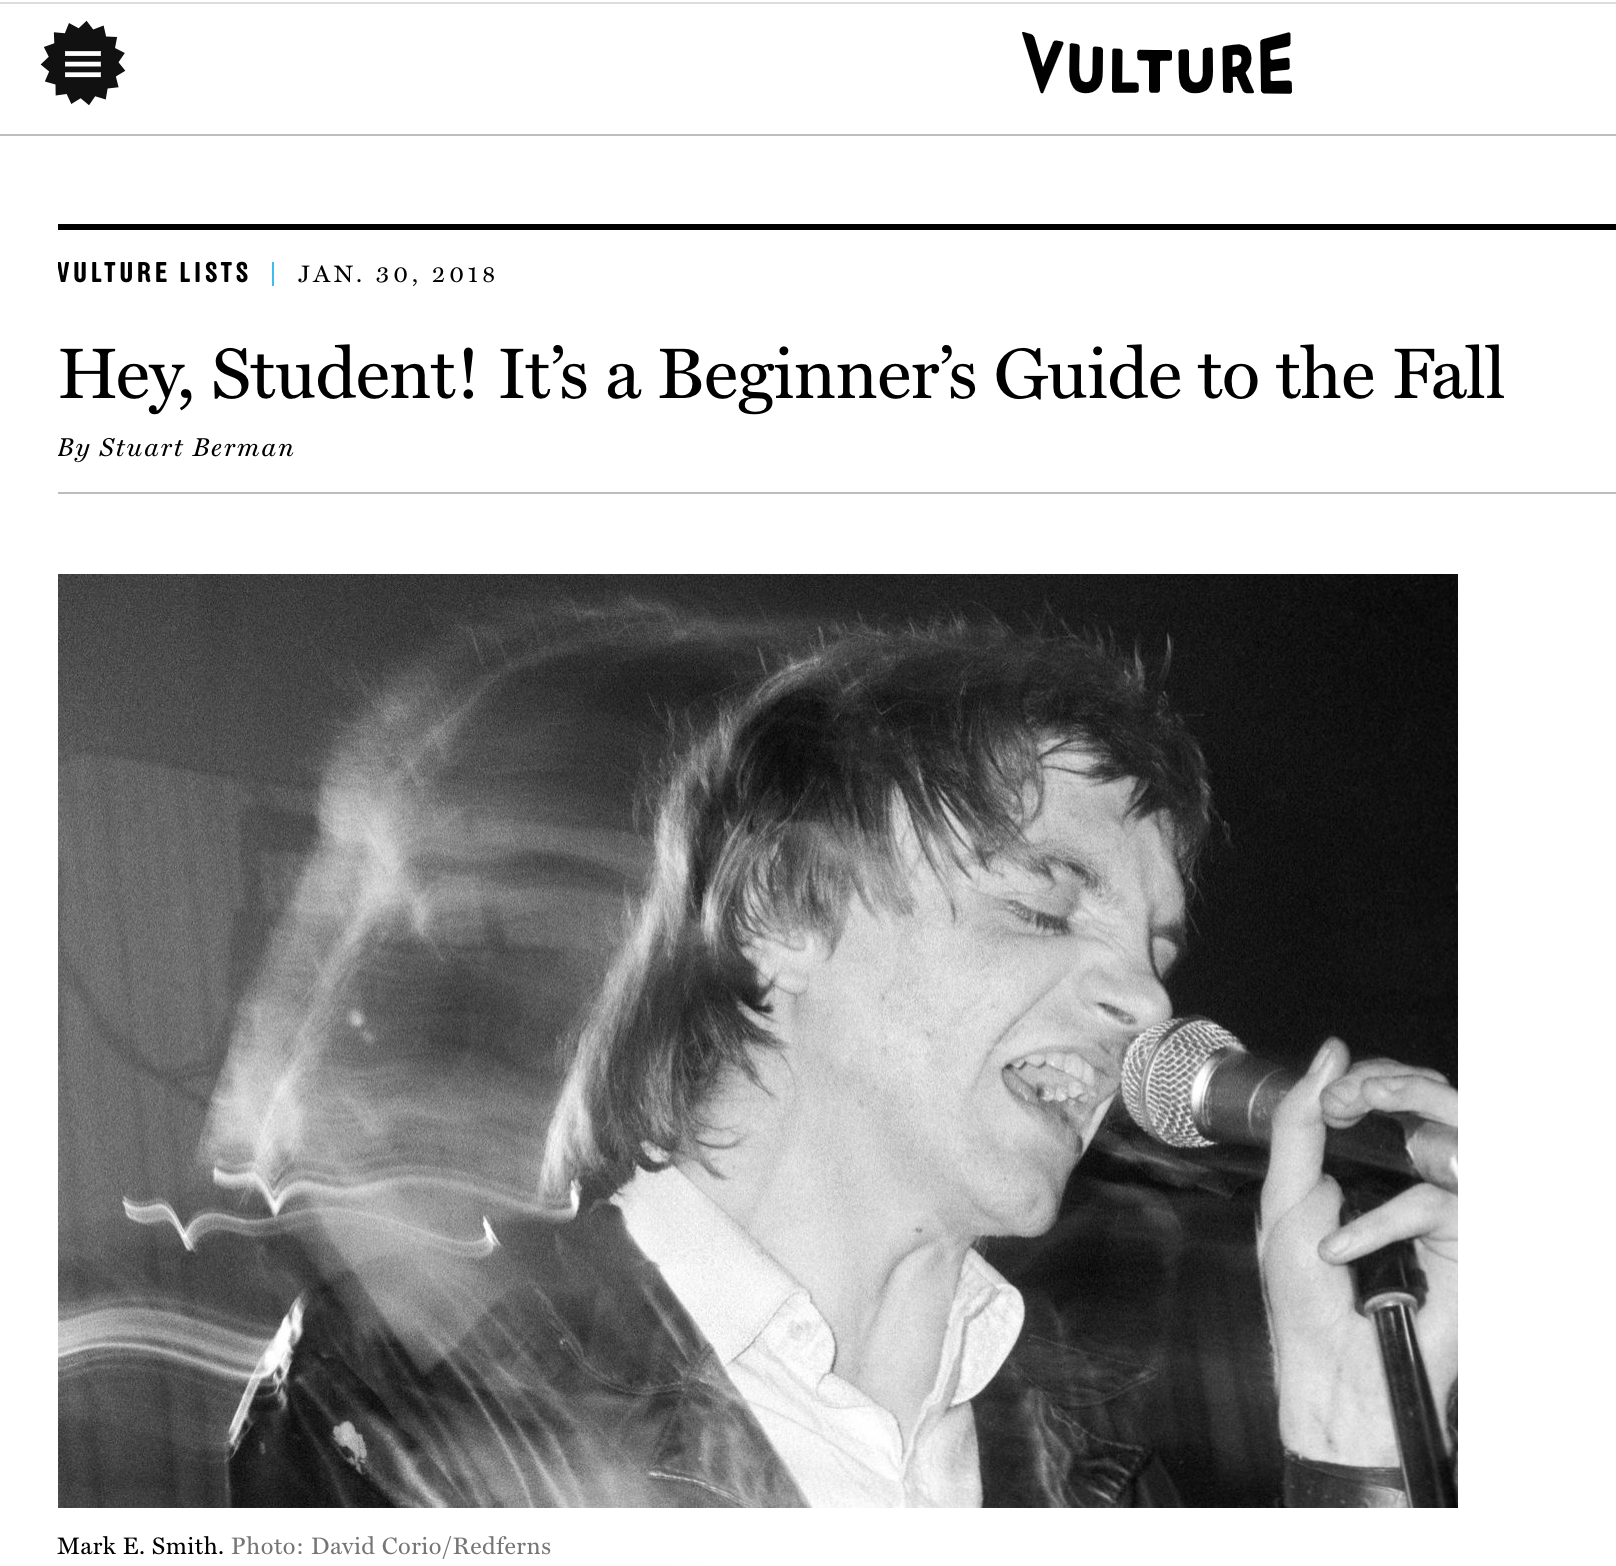 Hey, Student! It's a Beginner's Guide to the Fall